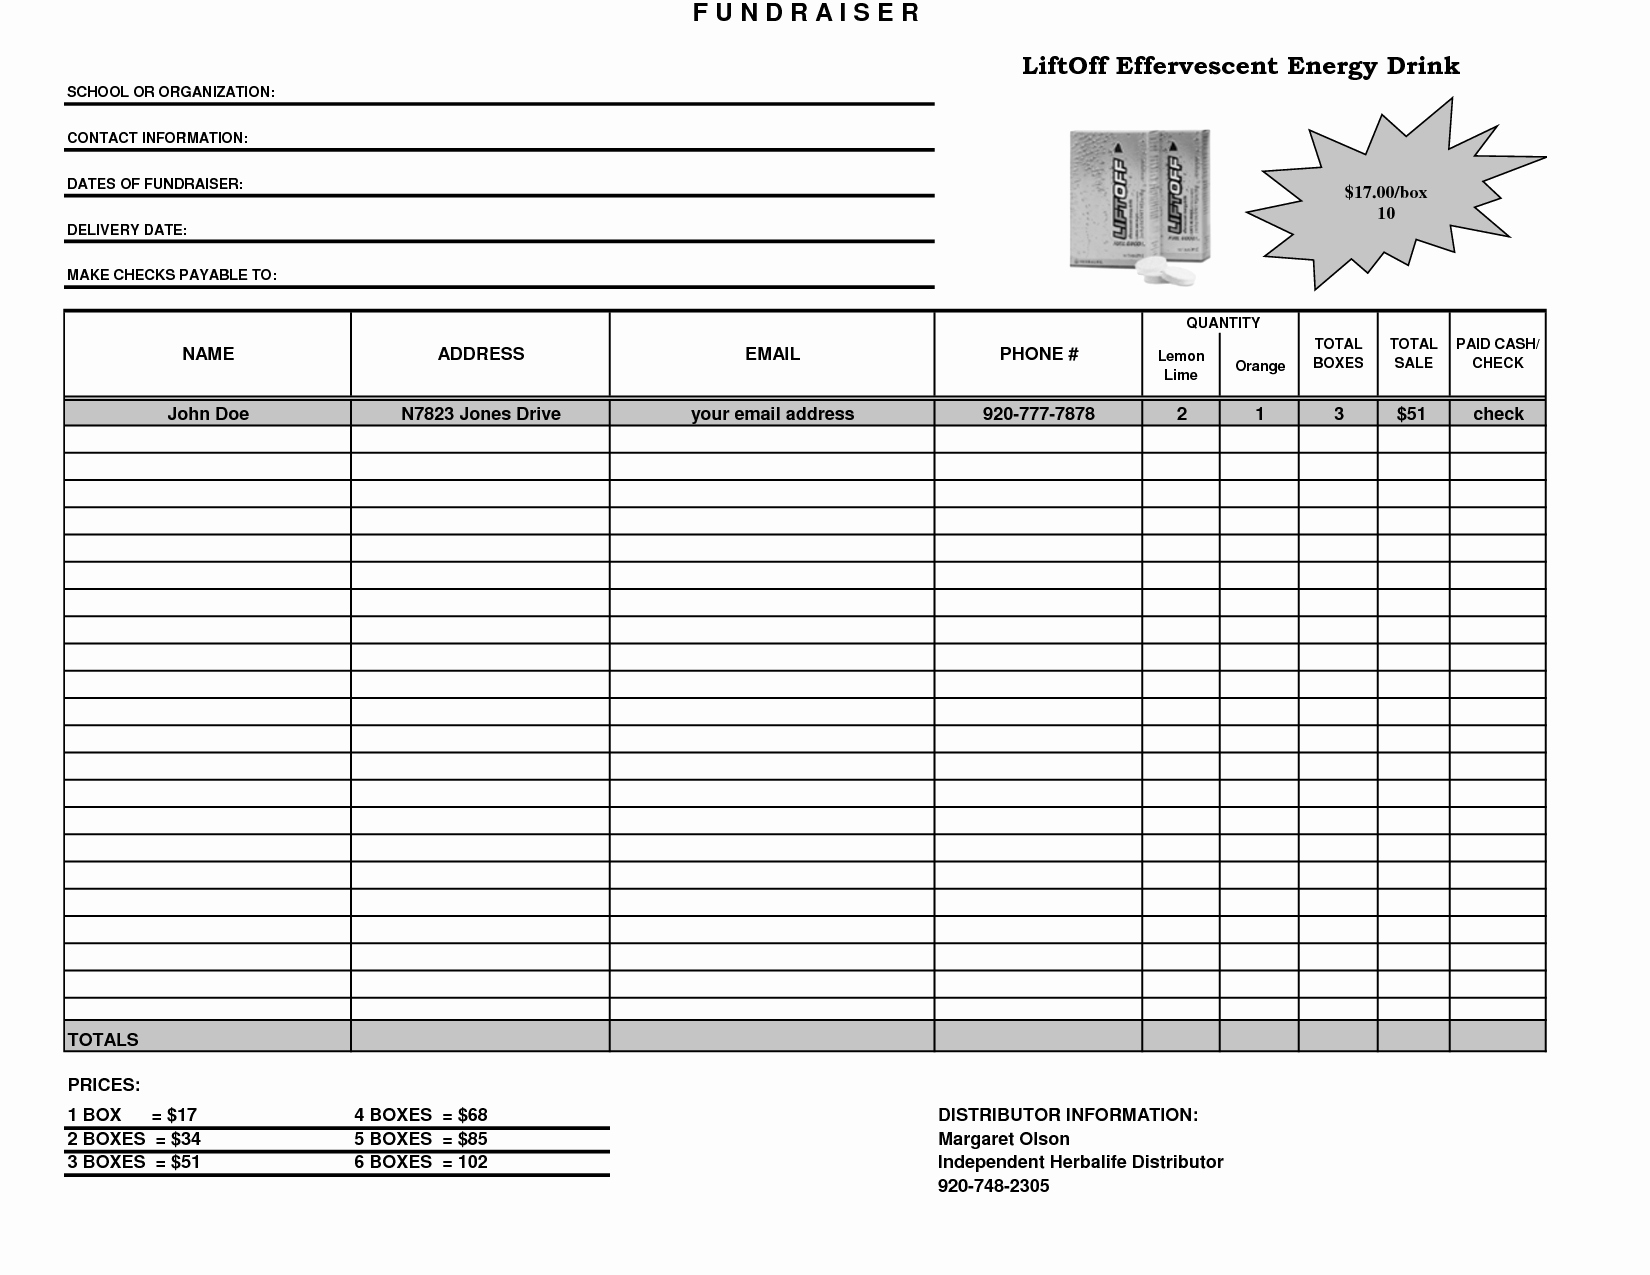 Excel Fundraiser order form Template Lovely Fundraiser Template Excel Fundraiser order form Template